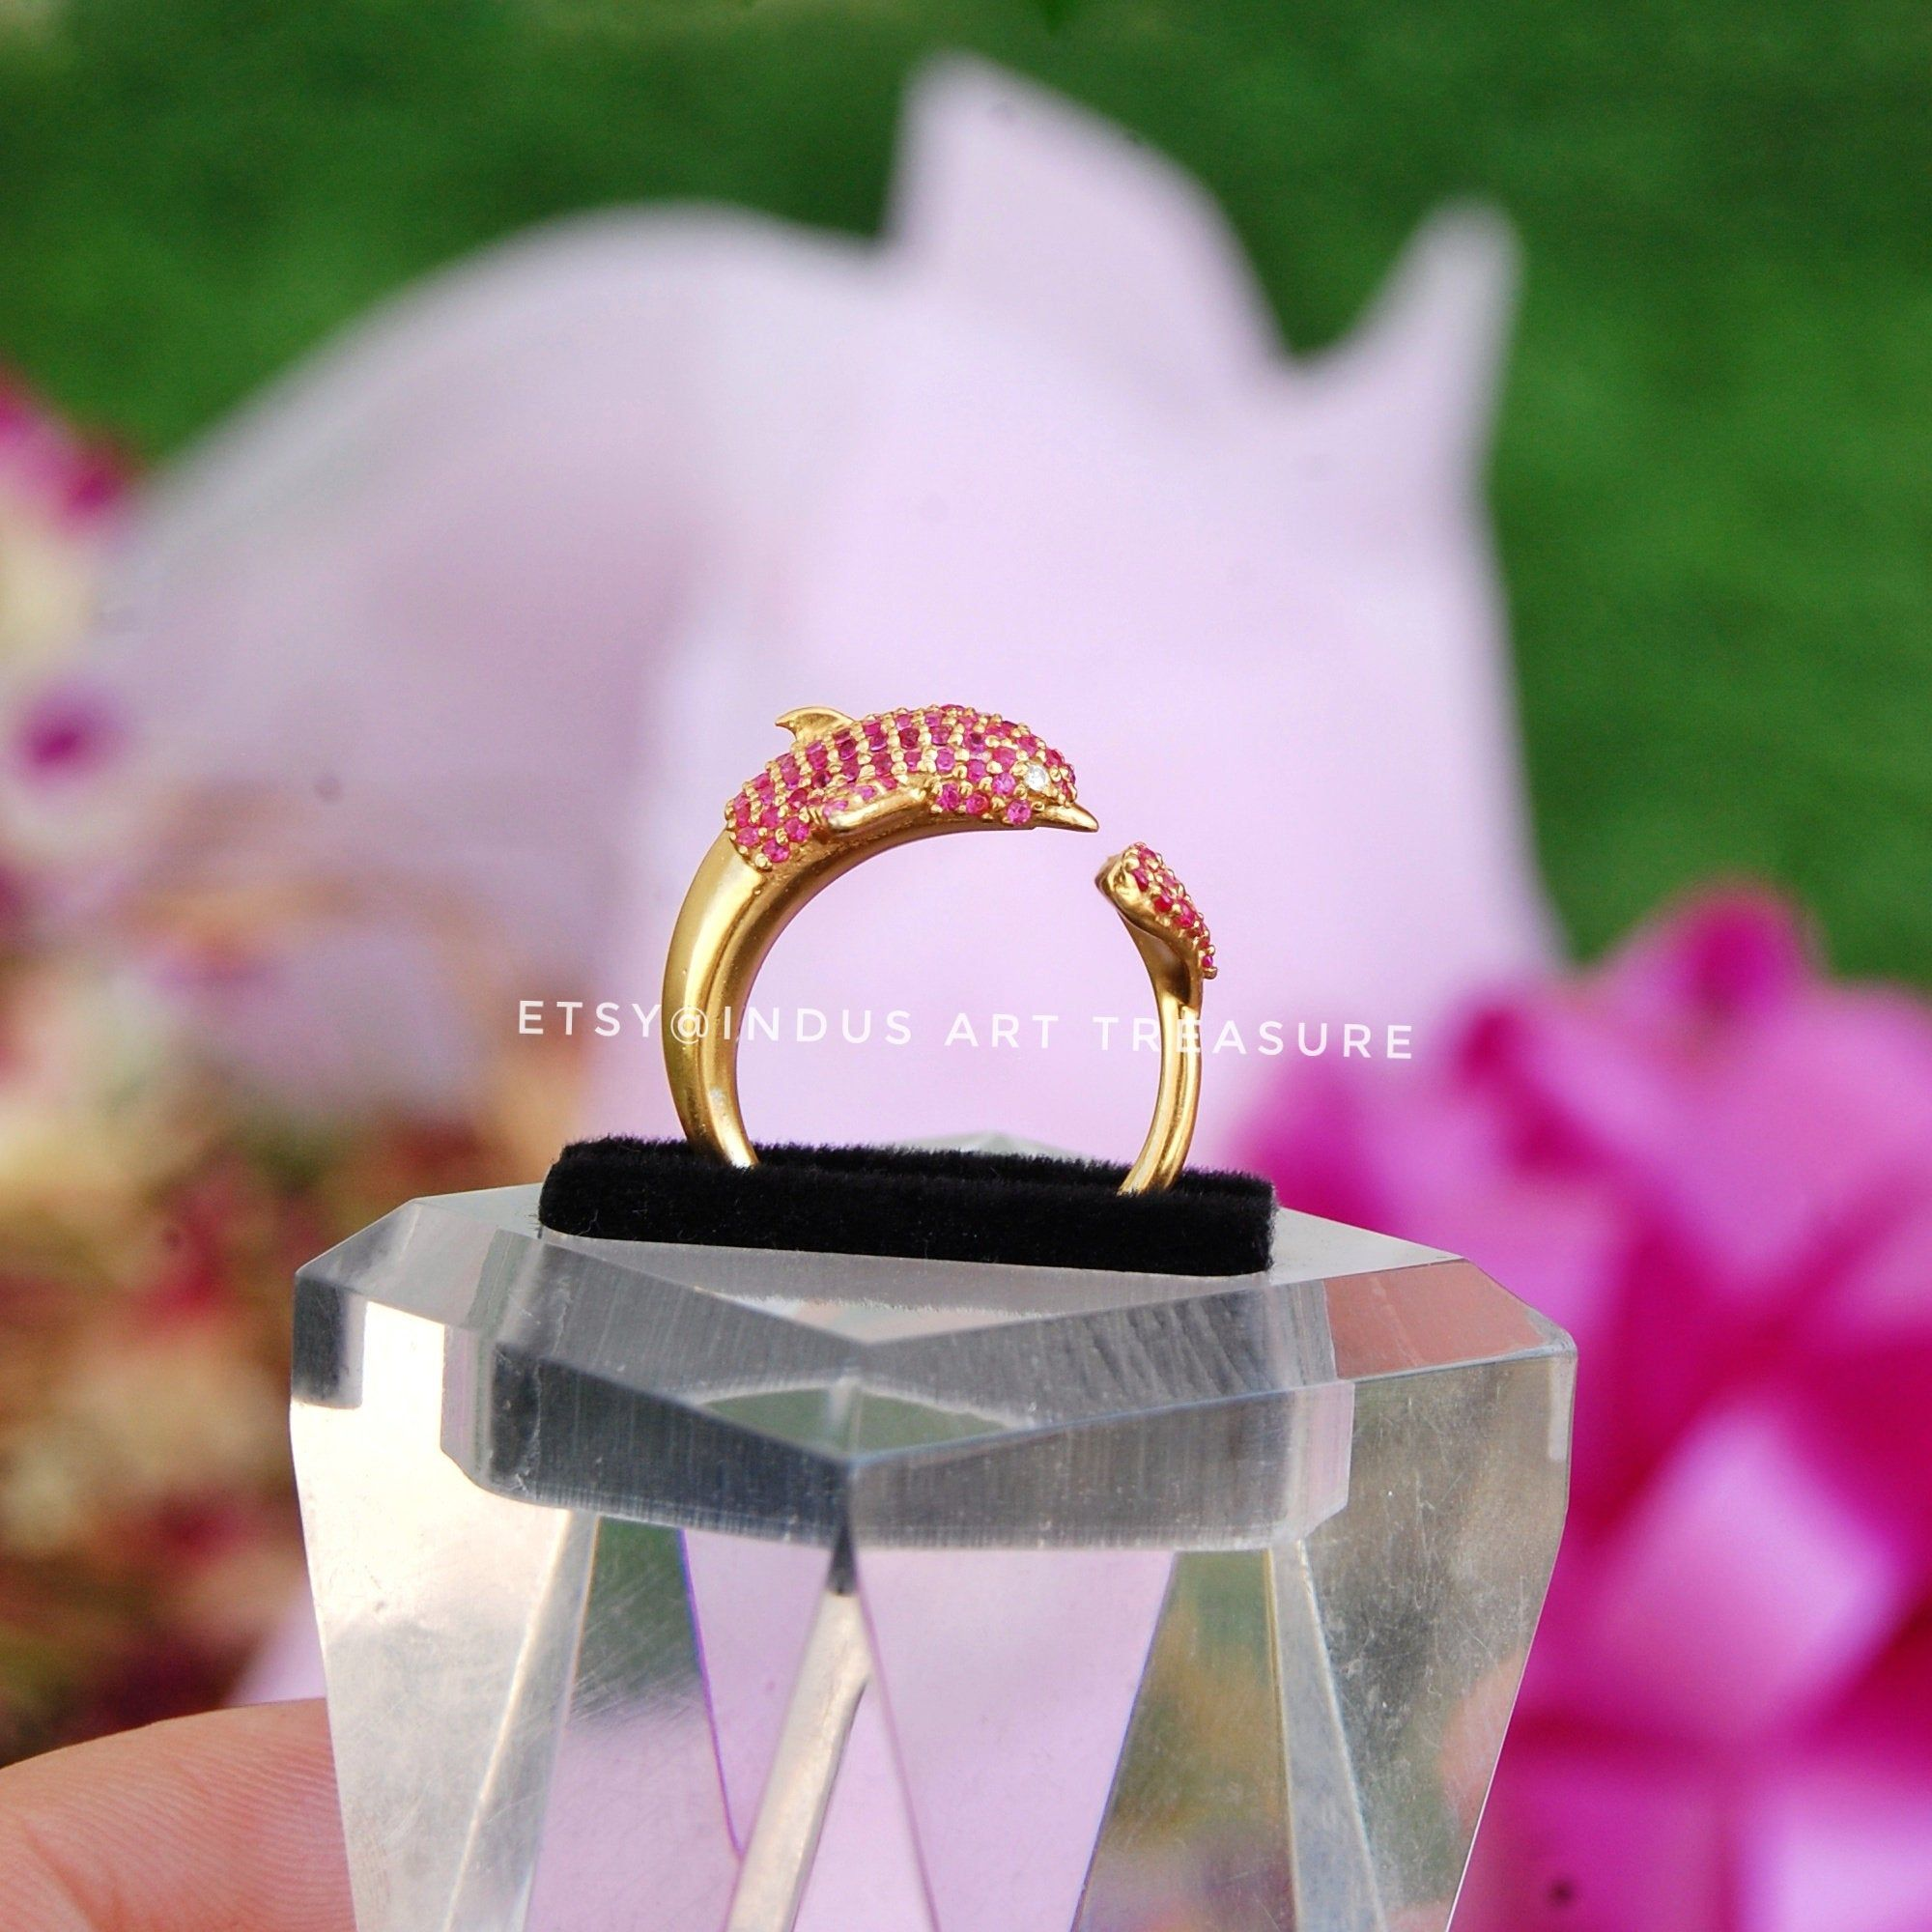 --------- Welcome To Indus Art Treasure --------- Product : Natural Ruby Dainty Gold Ring, Wrap Around Ring, Ocean Ring, Anniversary Gift Ring, Dolphin Ring, Red Stone Ring, Gifts for Her, Gold Plated 925 Sterling Silver Delicate Ring, Dainty Gold Ring, Wedding Ring Jewelry, Fish Ring, Propose Ring. Material : 925 Sterling Silver Micro Gold Plated & Natural Ruby . Ring size : Adjustable Ring Size from ( US5 to US8). Features : Top Quality Gemstone, All Handmade Ring, Long Lasting Micro Gold